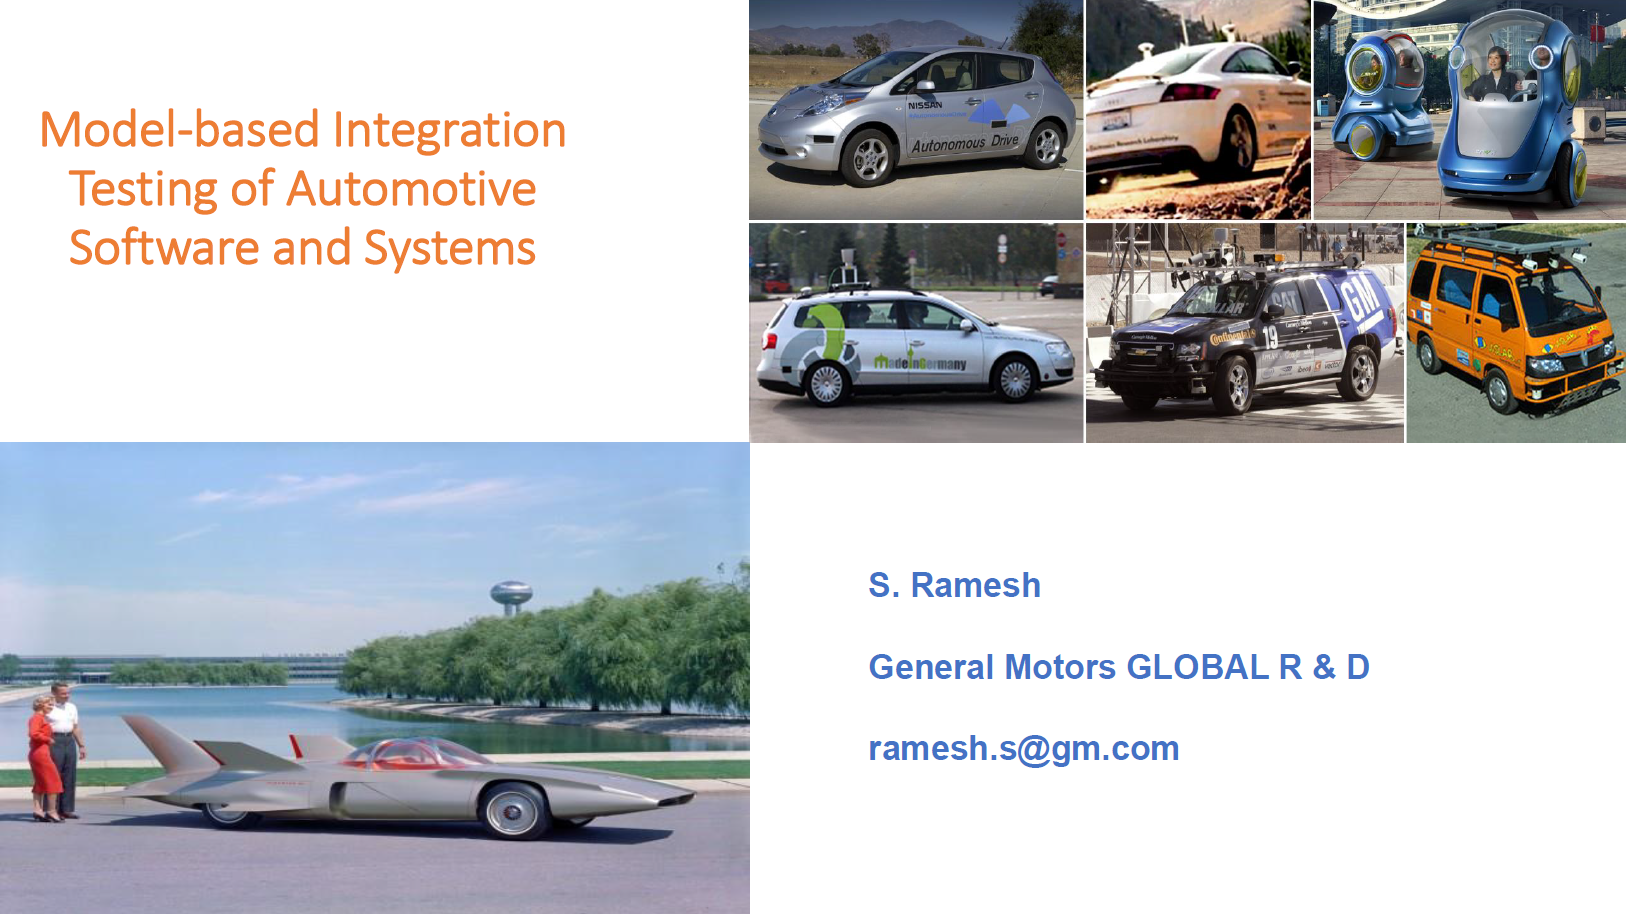 General Motors Presentation on Model-based Integration Testing of Automotive Software and Systems